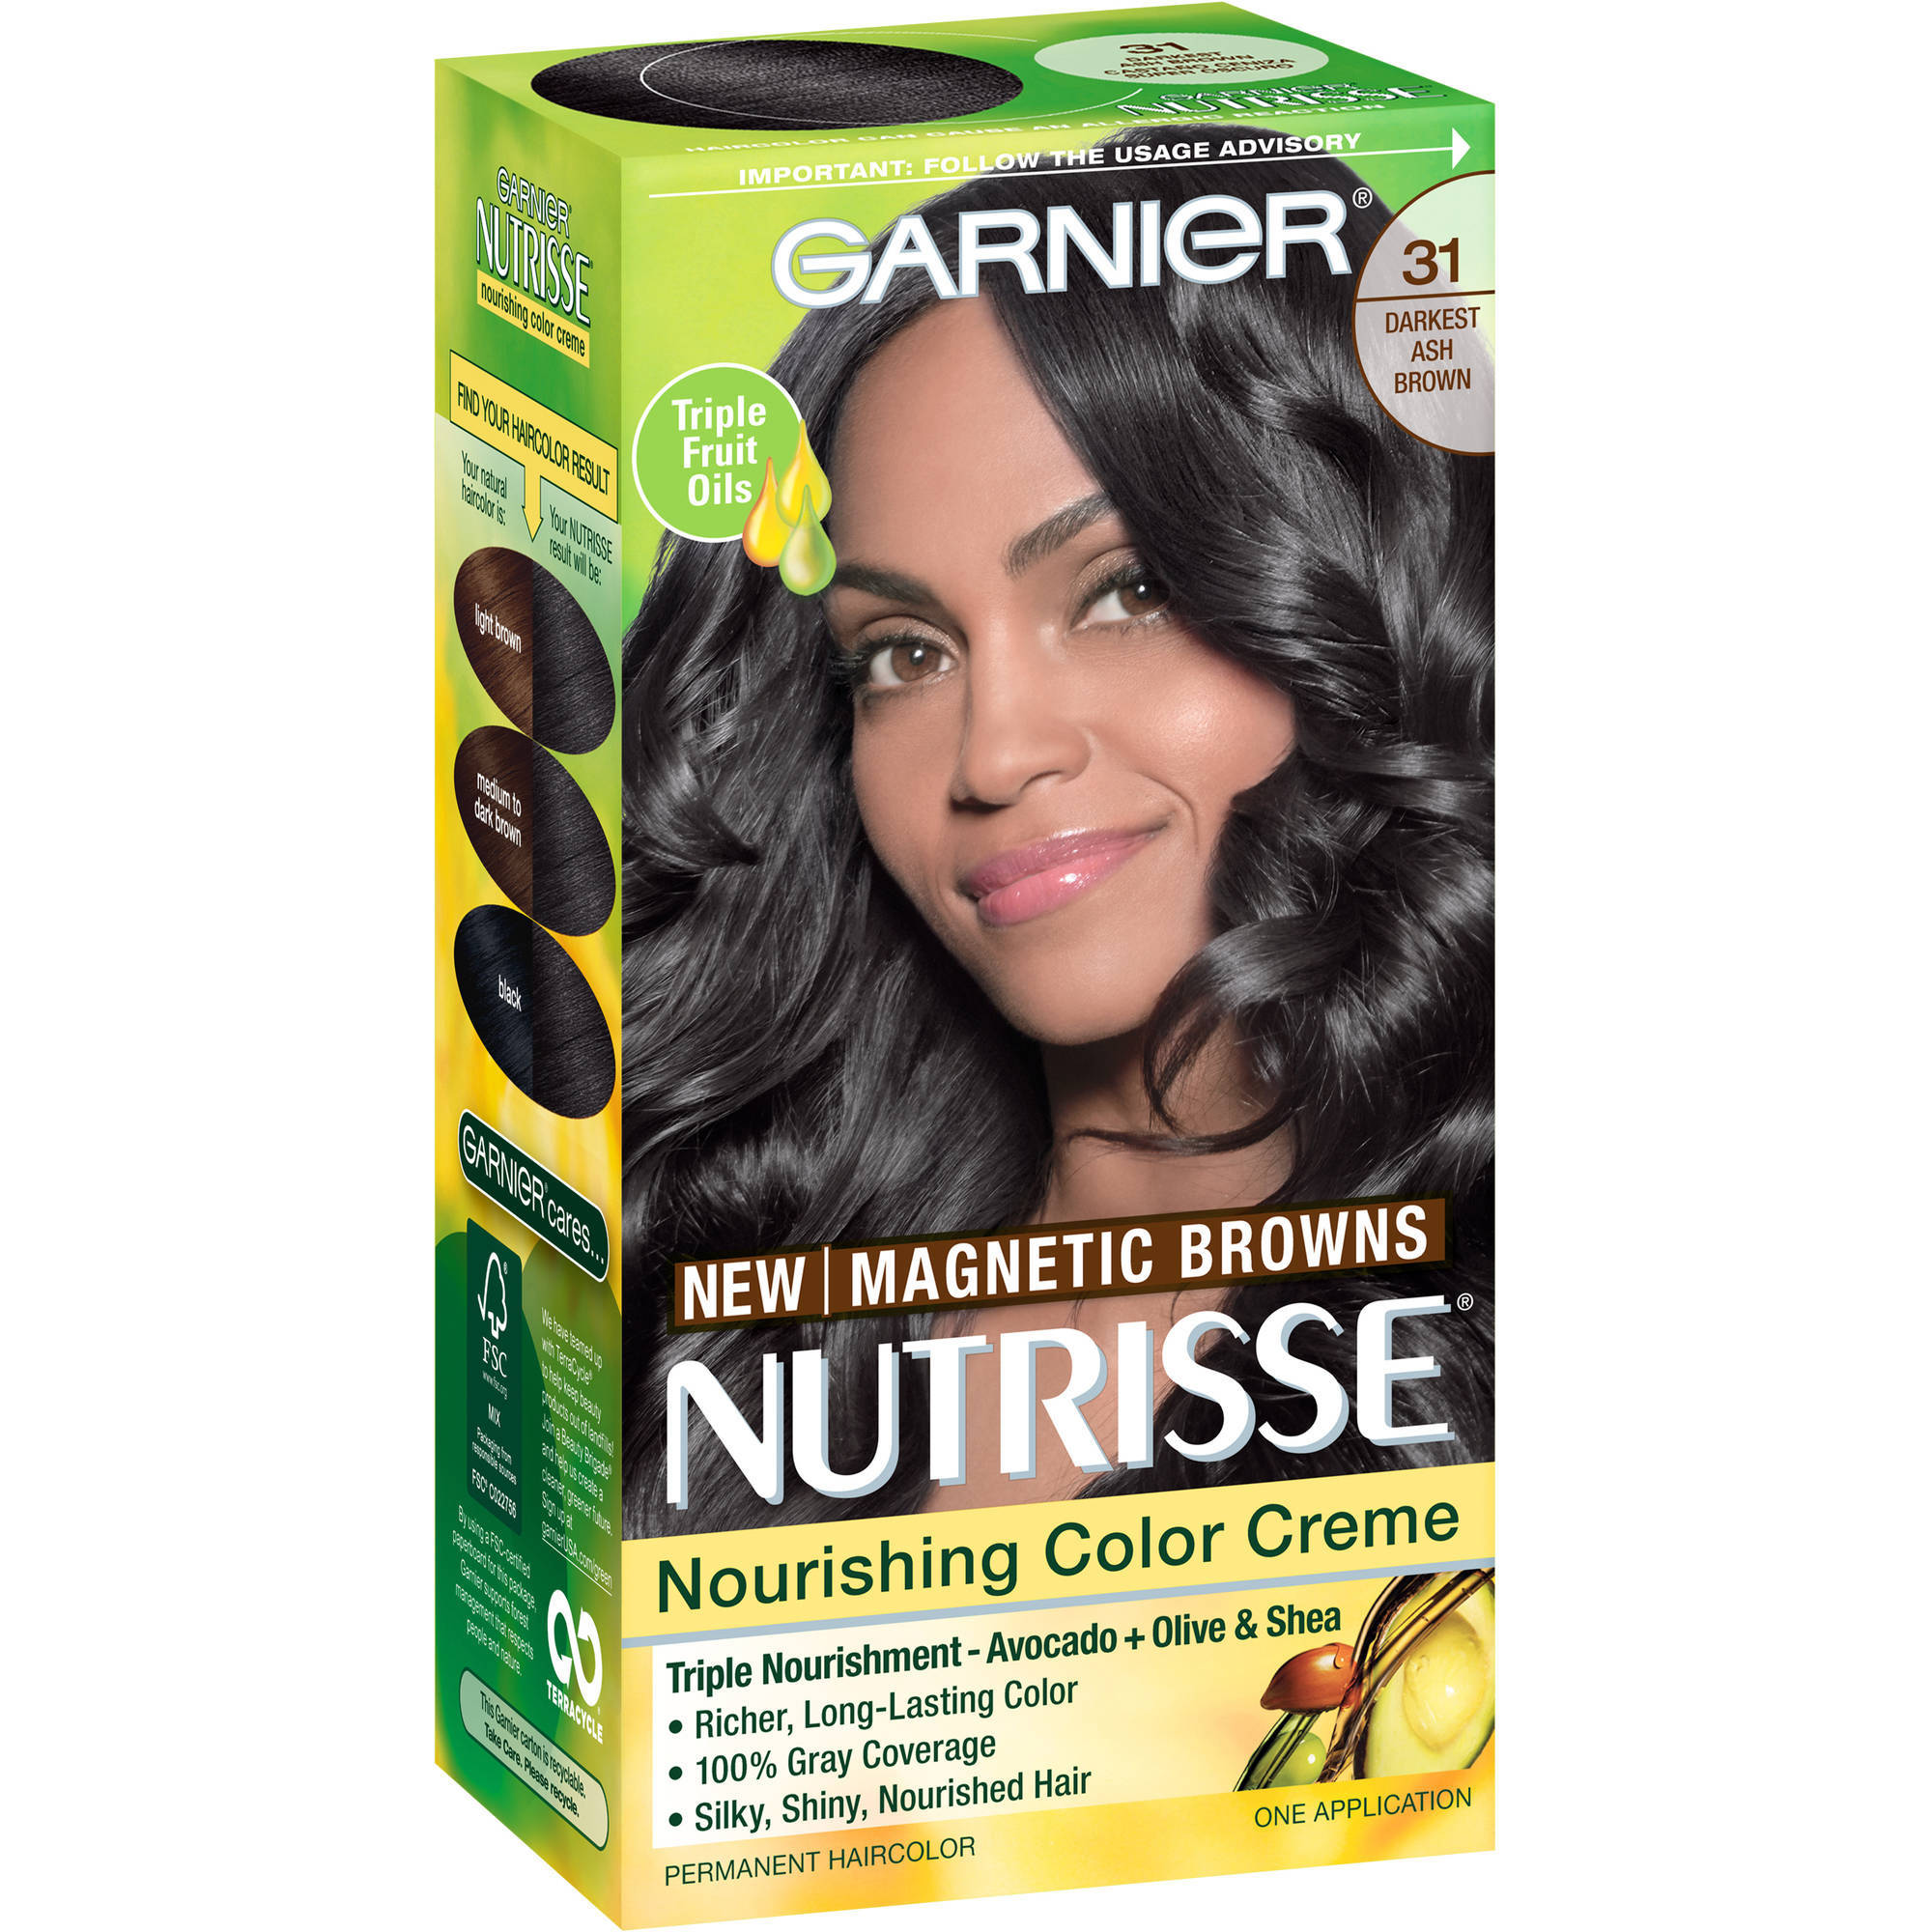 Garnier Nutrisse Nourishing Color Creme, 31 Darkest Ash Brown